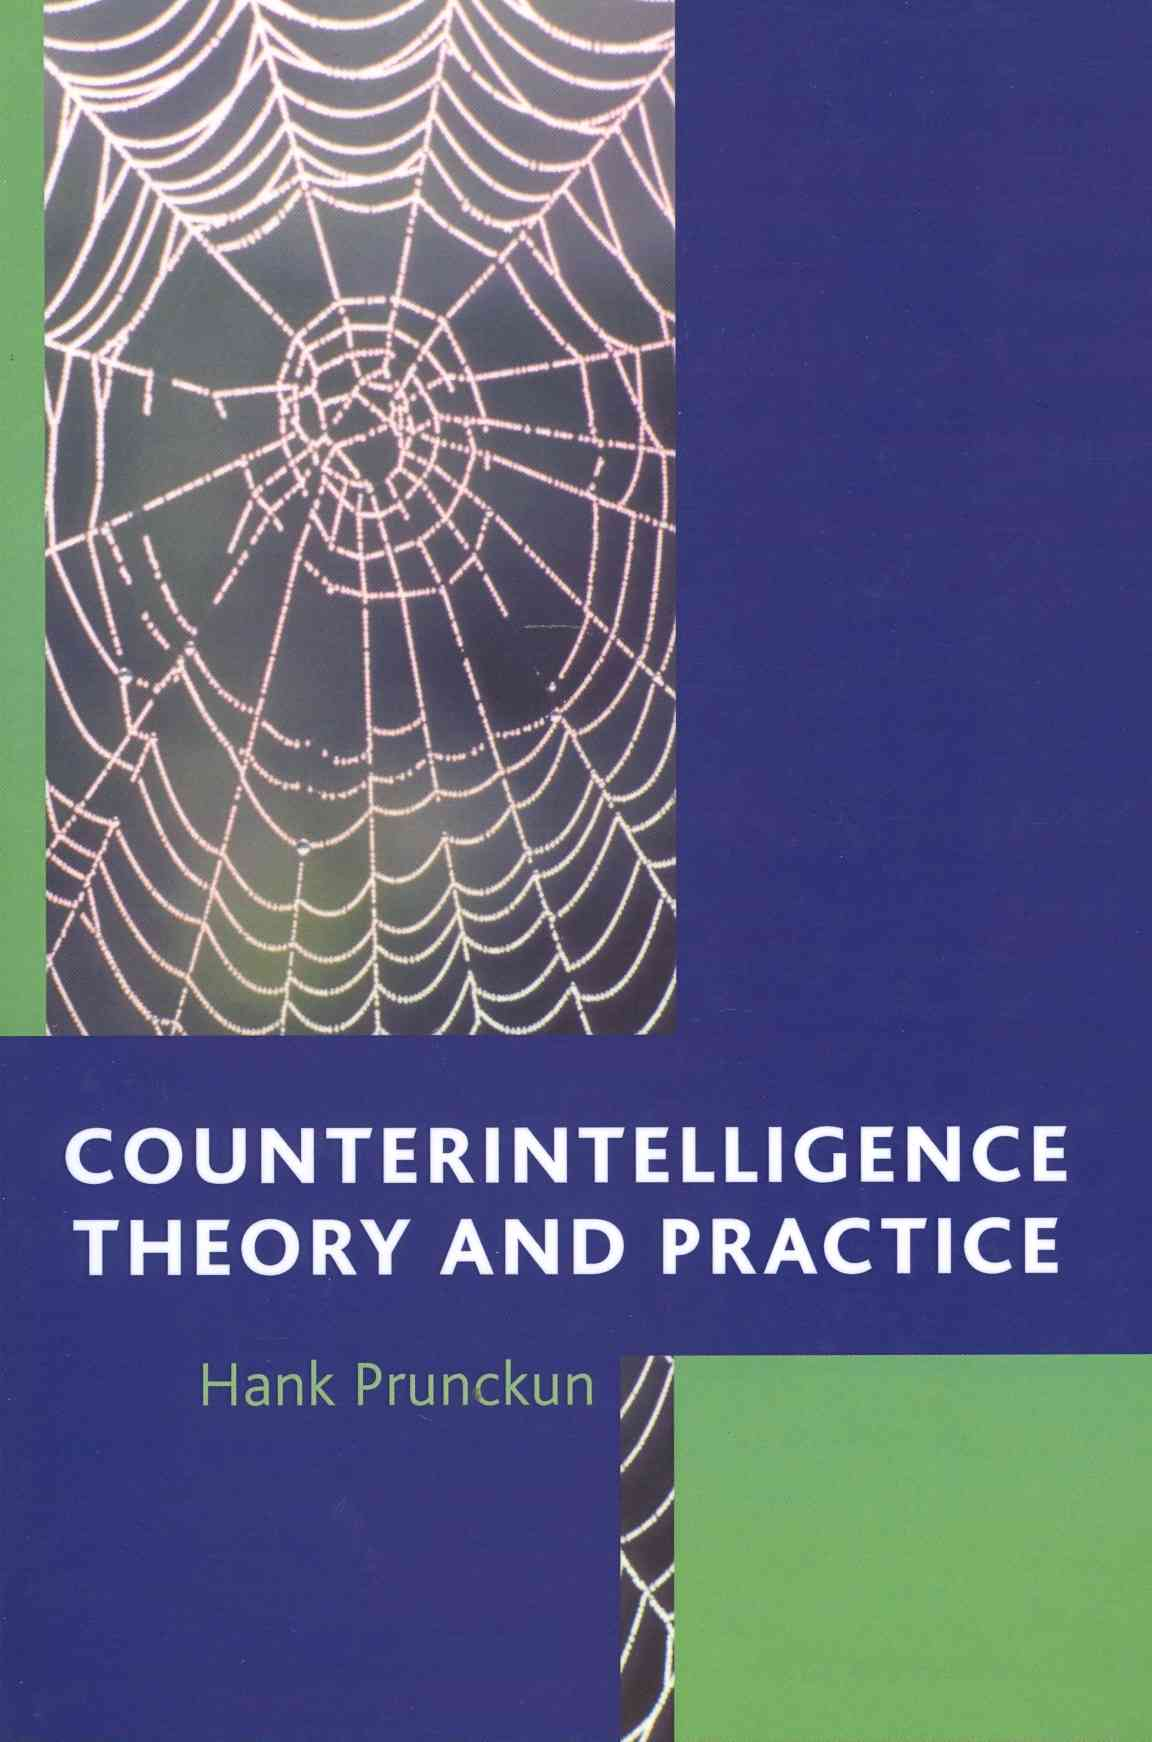 Counterintelligence Theory and Practice By Prunckun, Hank